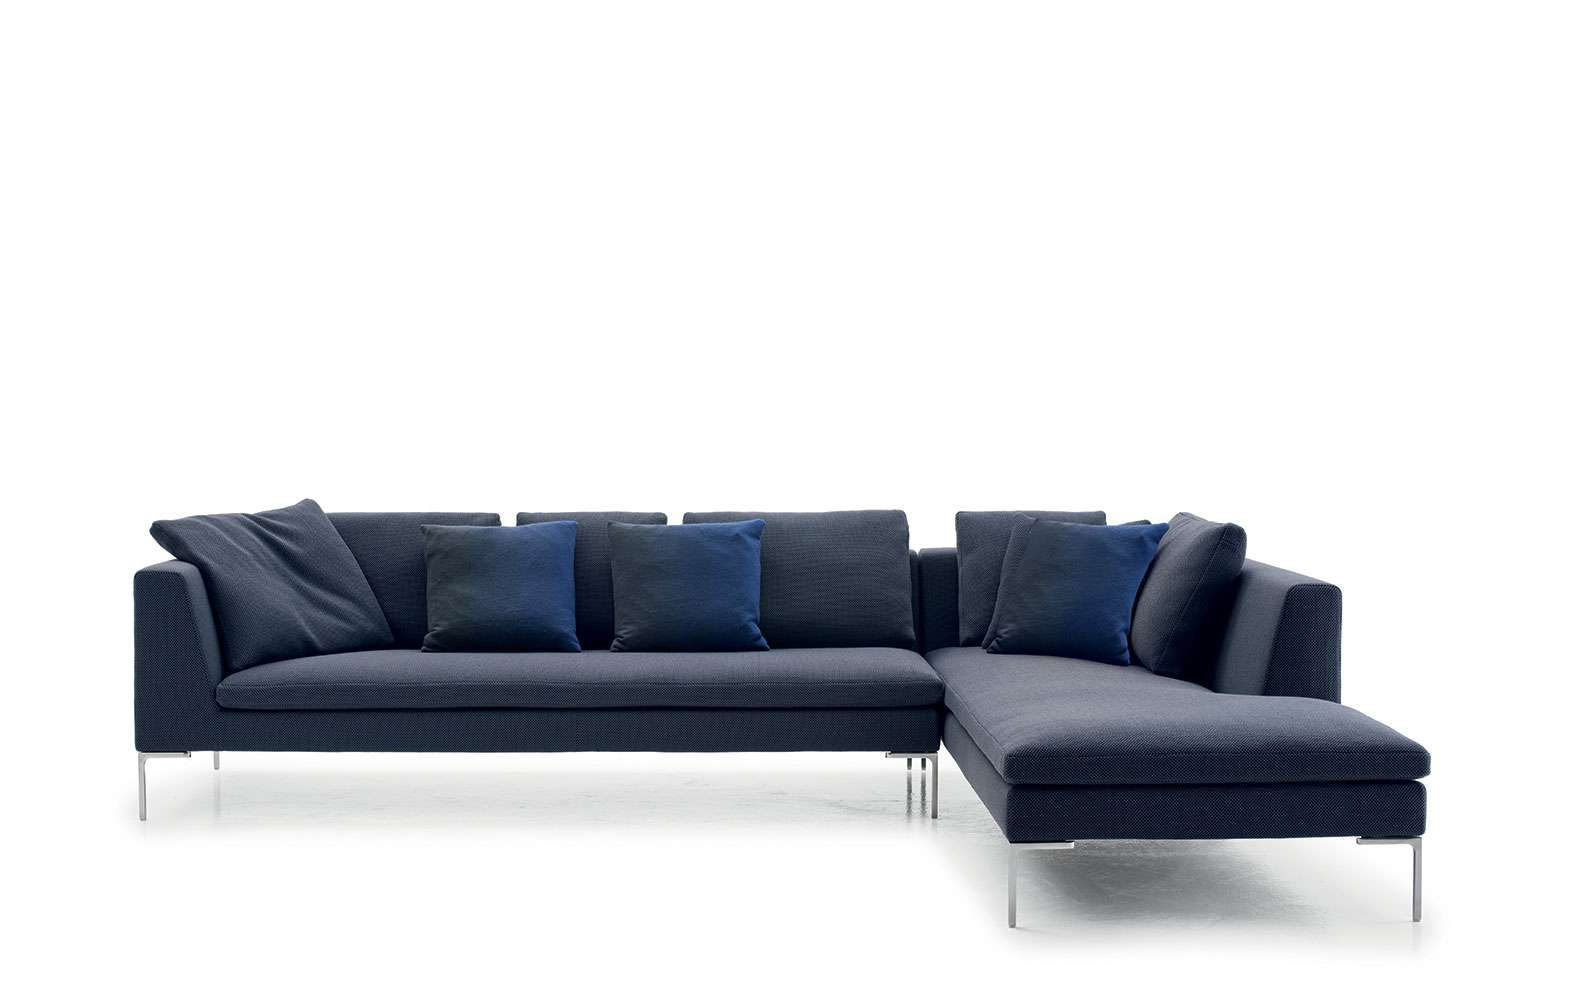 Marvelous Bb Italia Charles Sectional Sofa Replica 2 3 Seater Available Ibusinesslaw Wood Chair Design Ideas Ibusinesslaworg